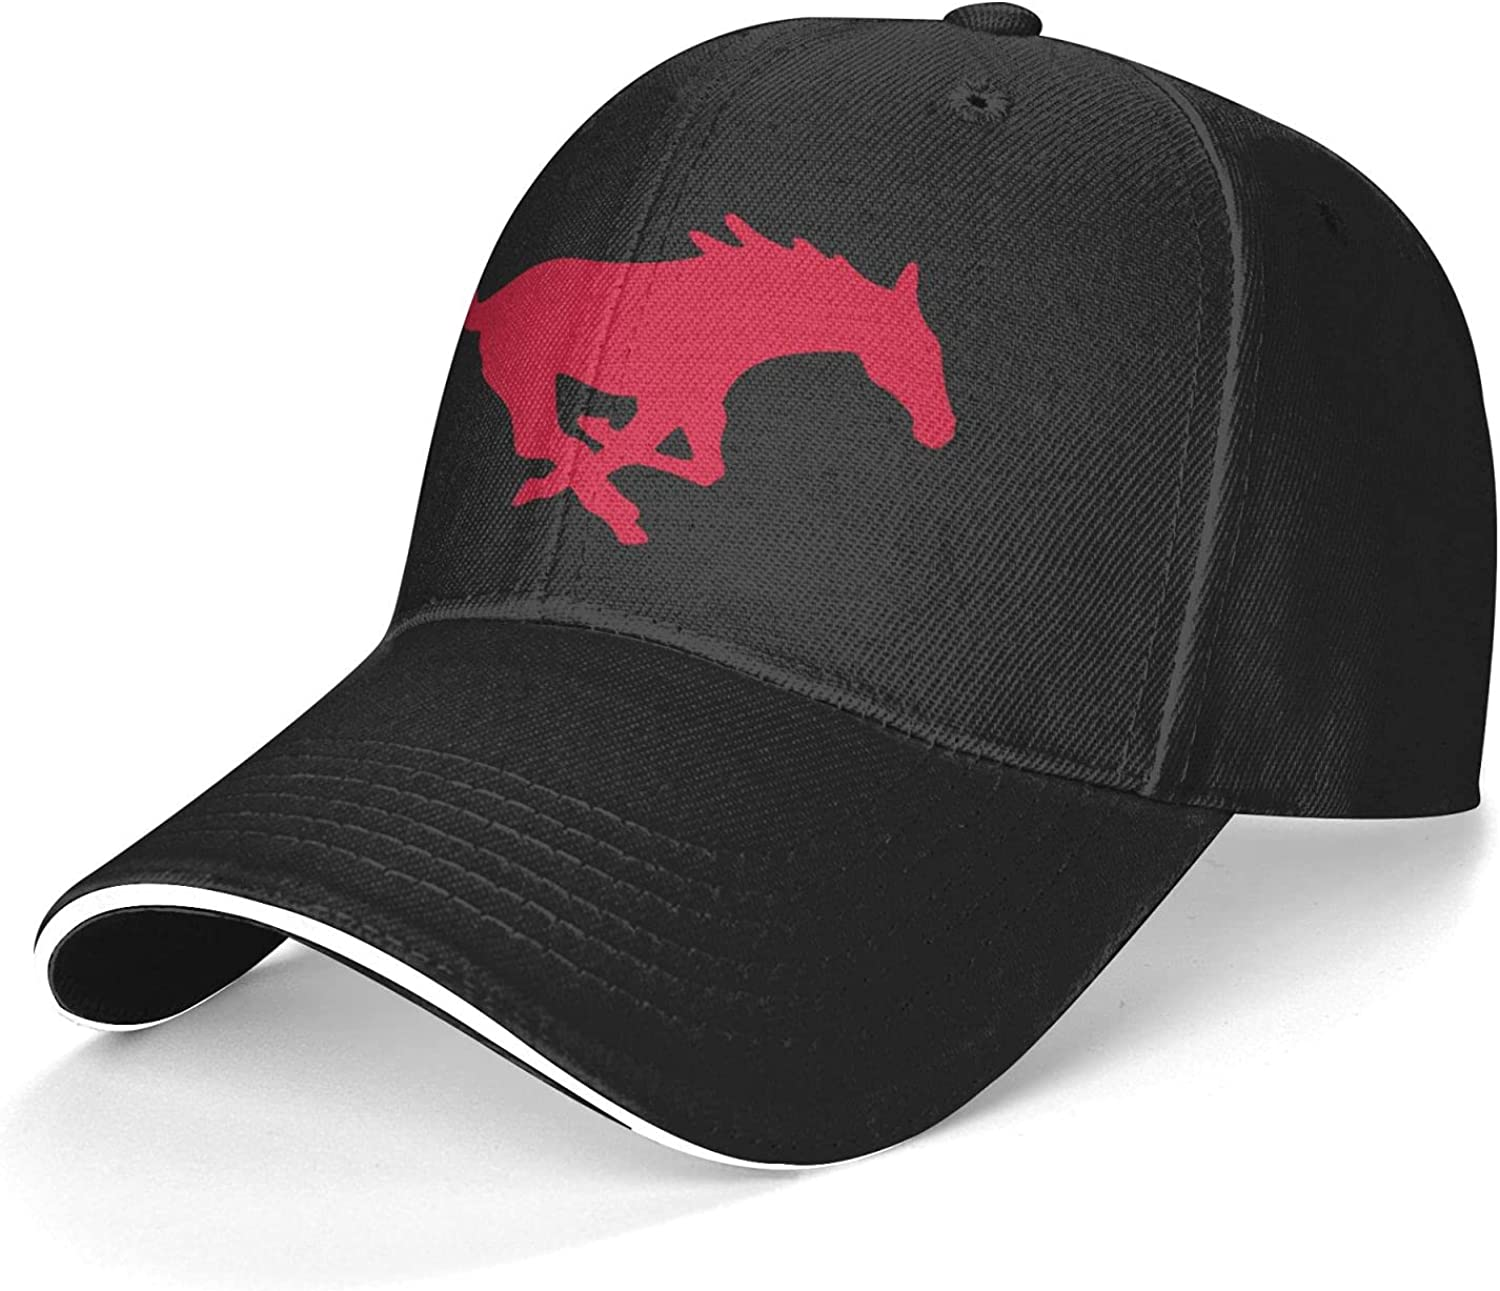 Mens&Womens SMU Mustangs Snapback Hats Caps with College Sport Team Logo for Baseball, Basketball